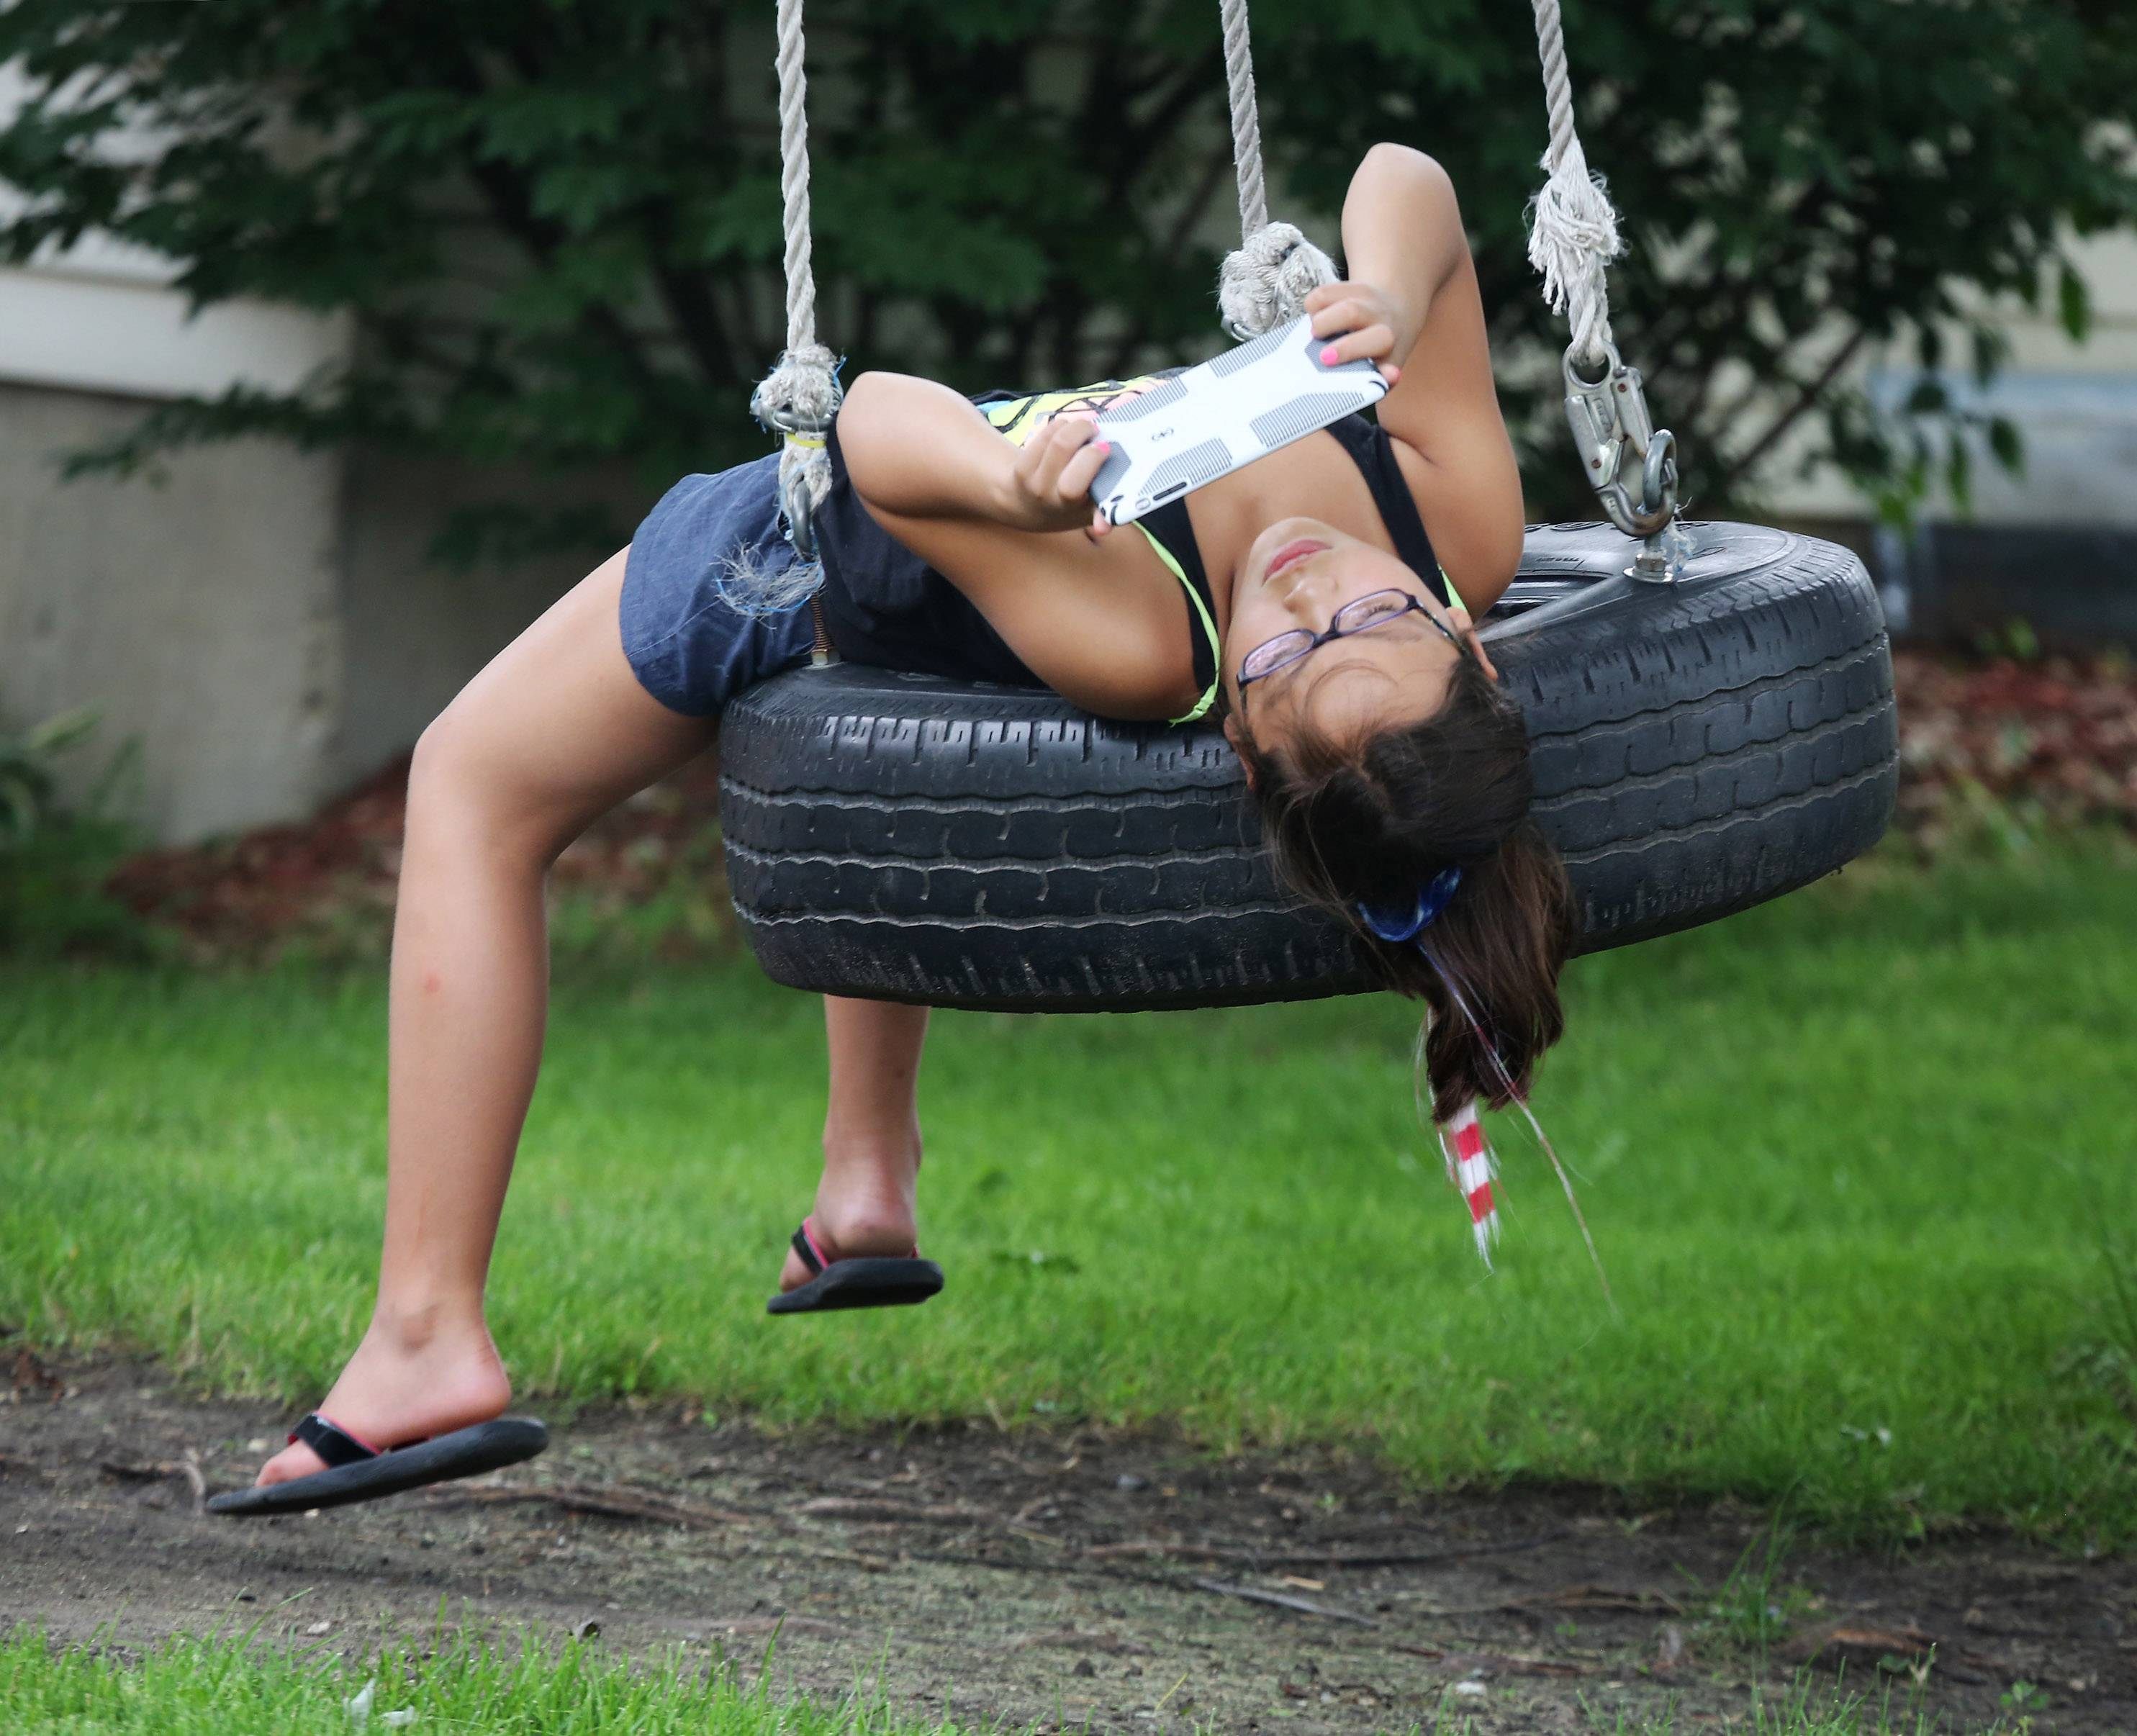 Andrea Deleon, 11, of Buffalo Grove, relaxes on a tire swing at her grandparent's Mundelein home as she plays a game on her iPad.